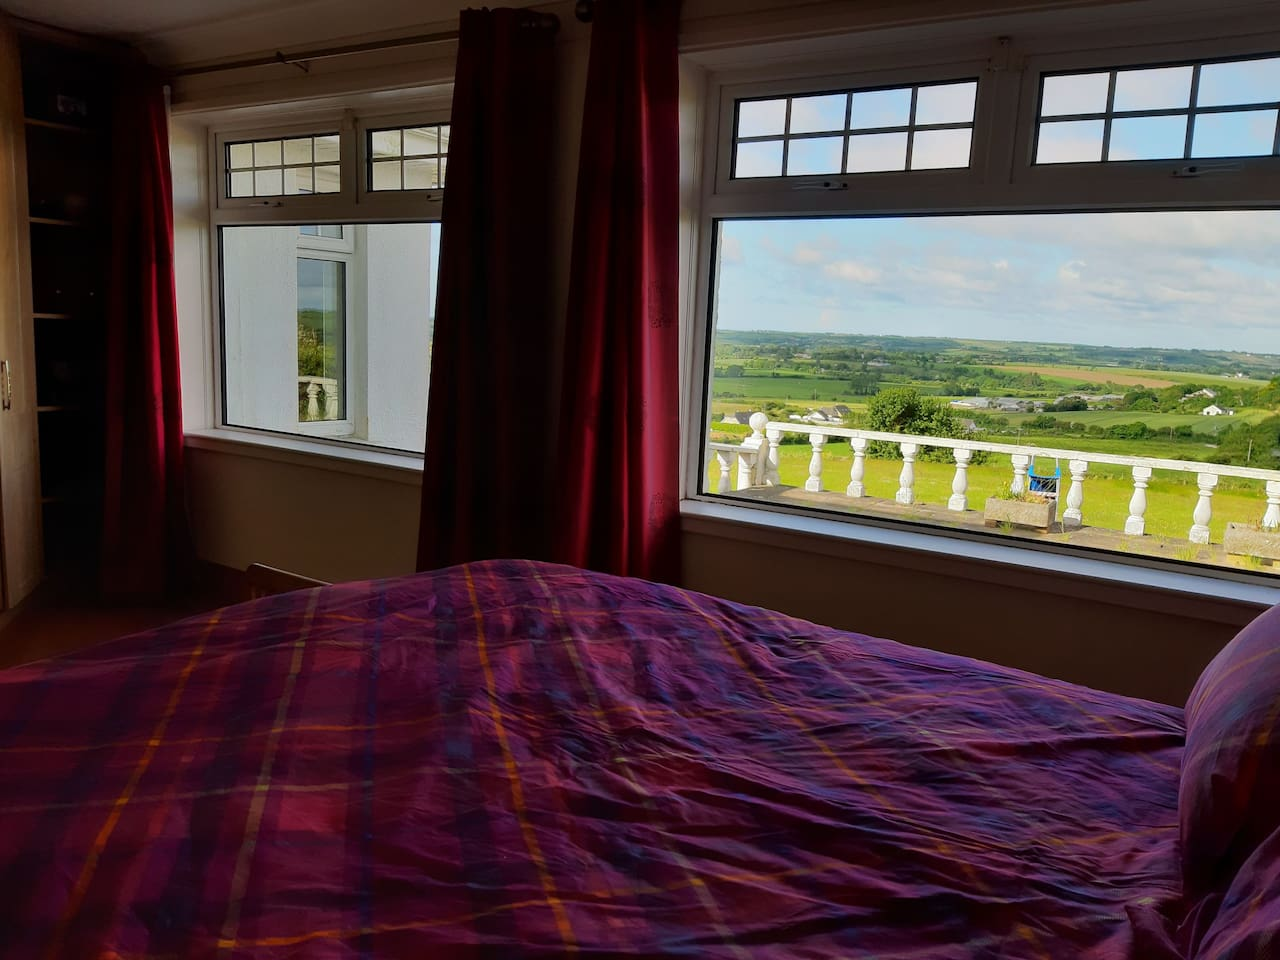 From the bright bedroom you'll see the surrounding valley of farm land and even glimpse the sea.